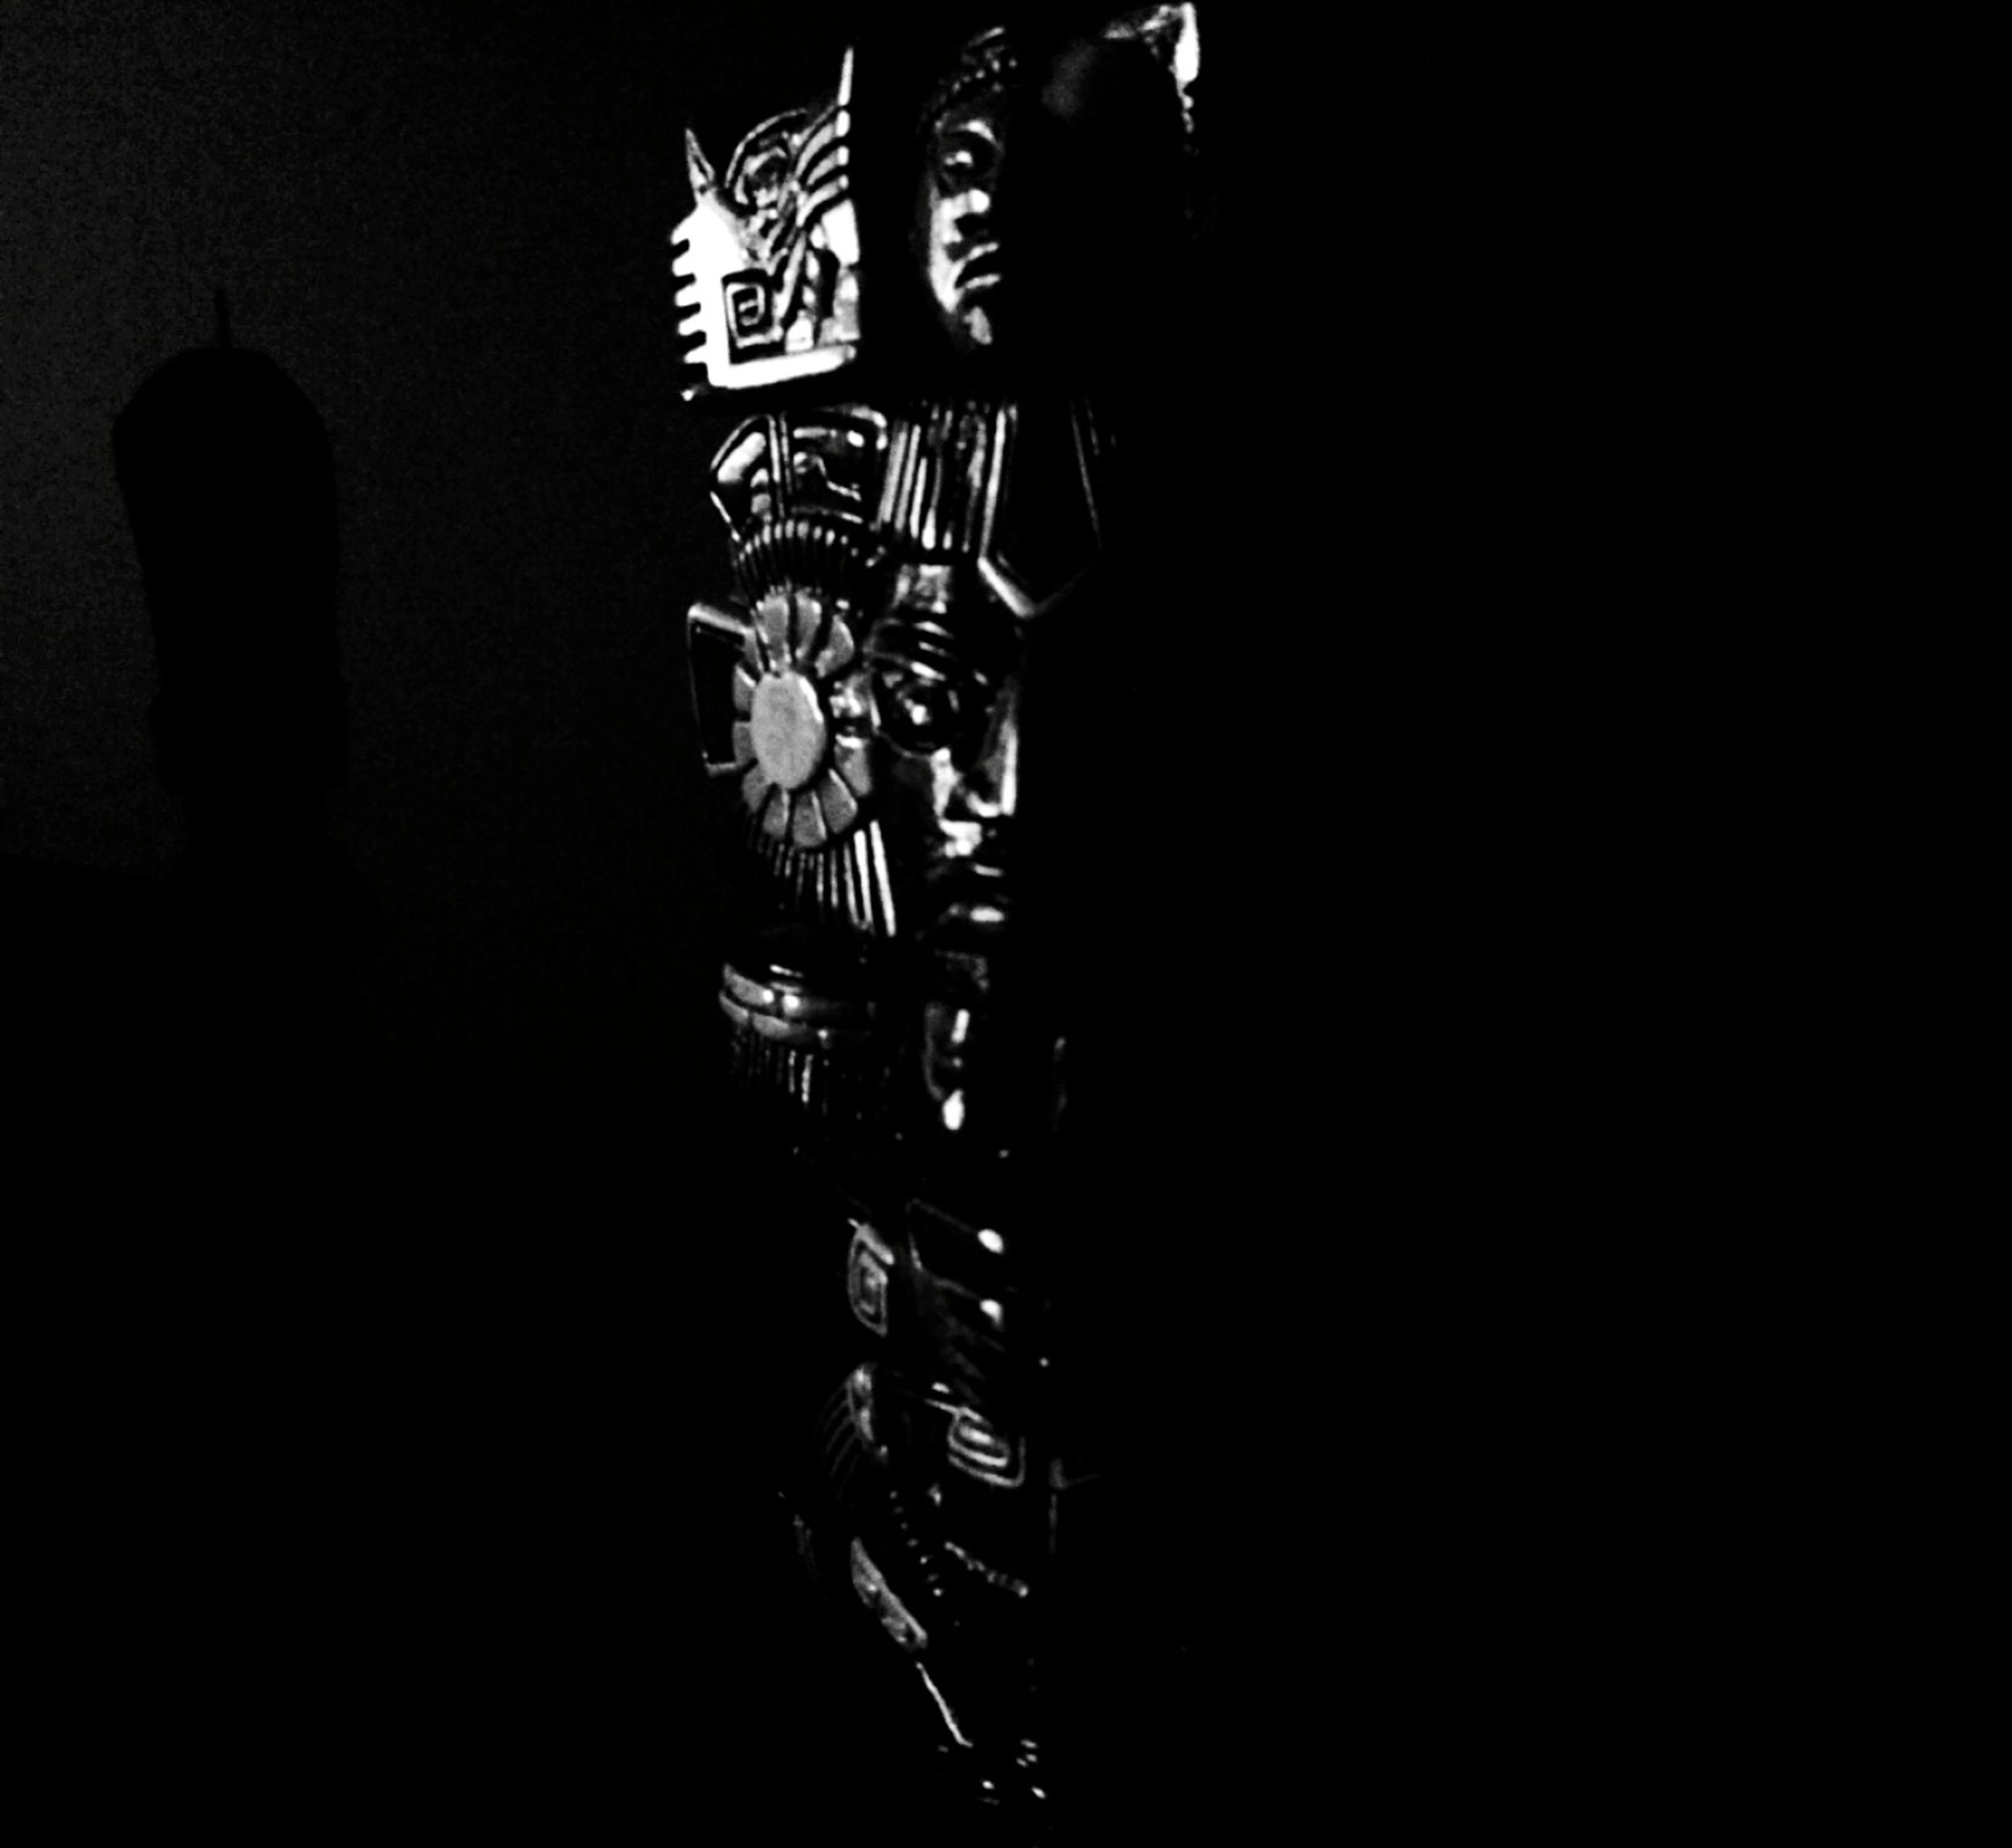 lifestyles, indoors, men, low section, night, standing, dark, person, leisure activity, shadow, unrecognizable person, silhouette, copy space, casual clothing, wall - building feature